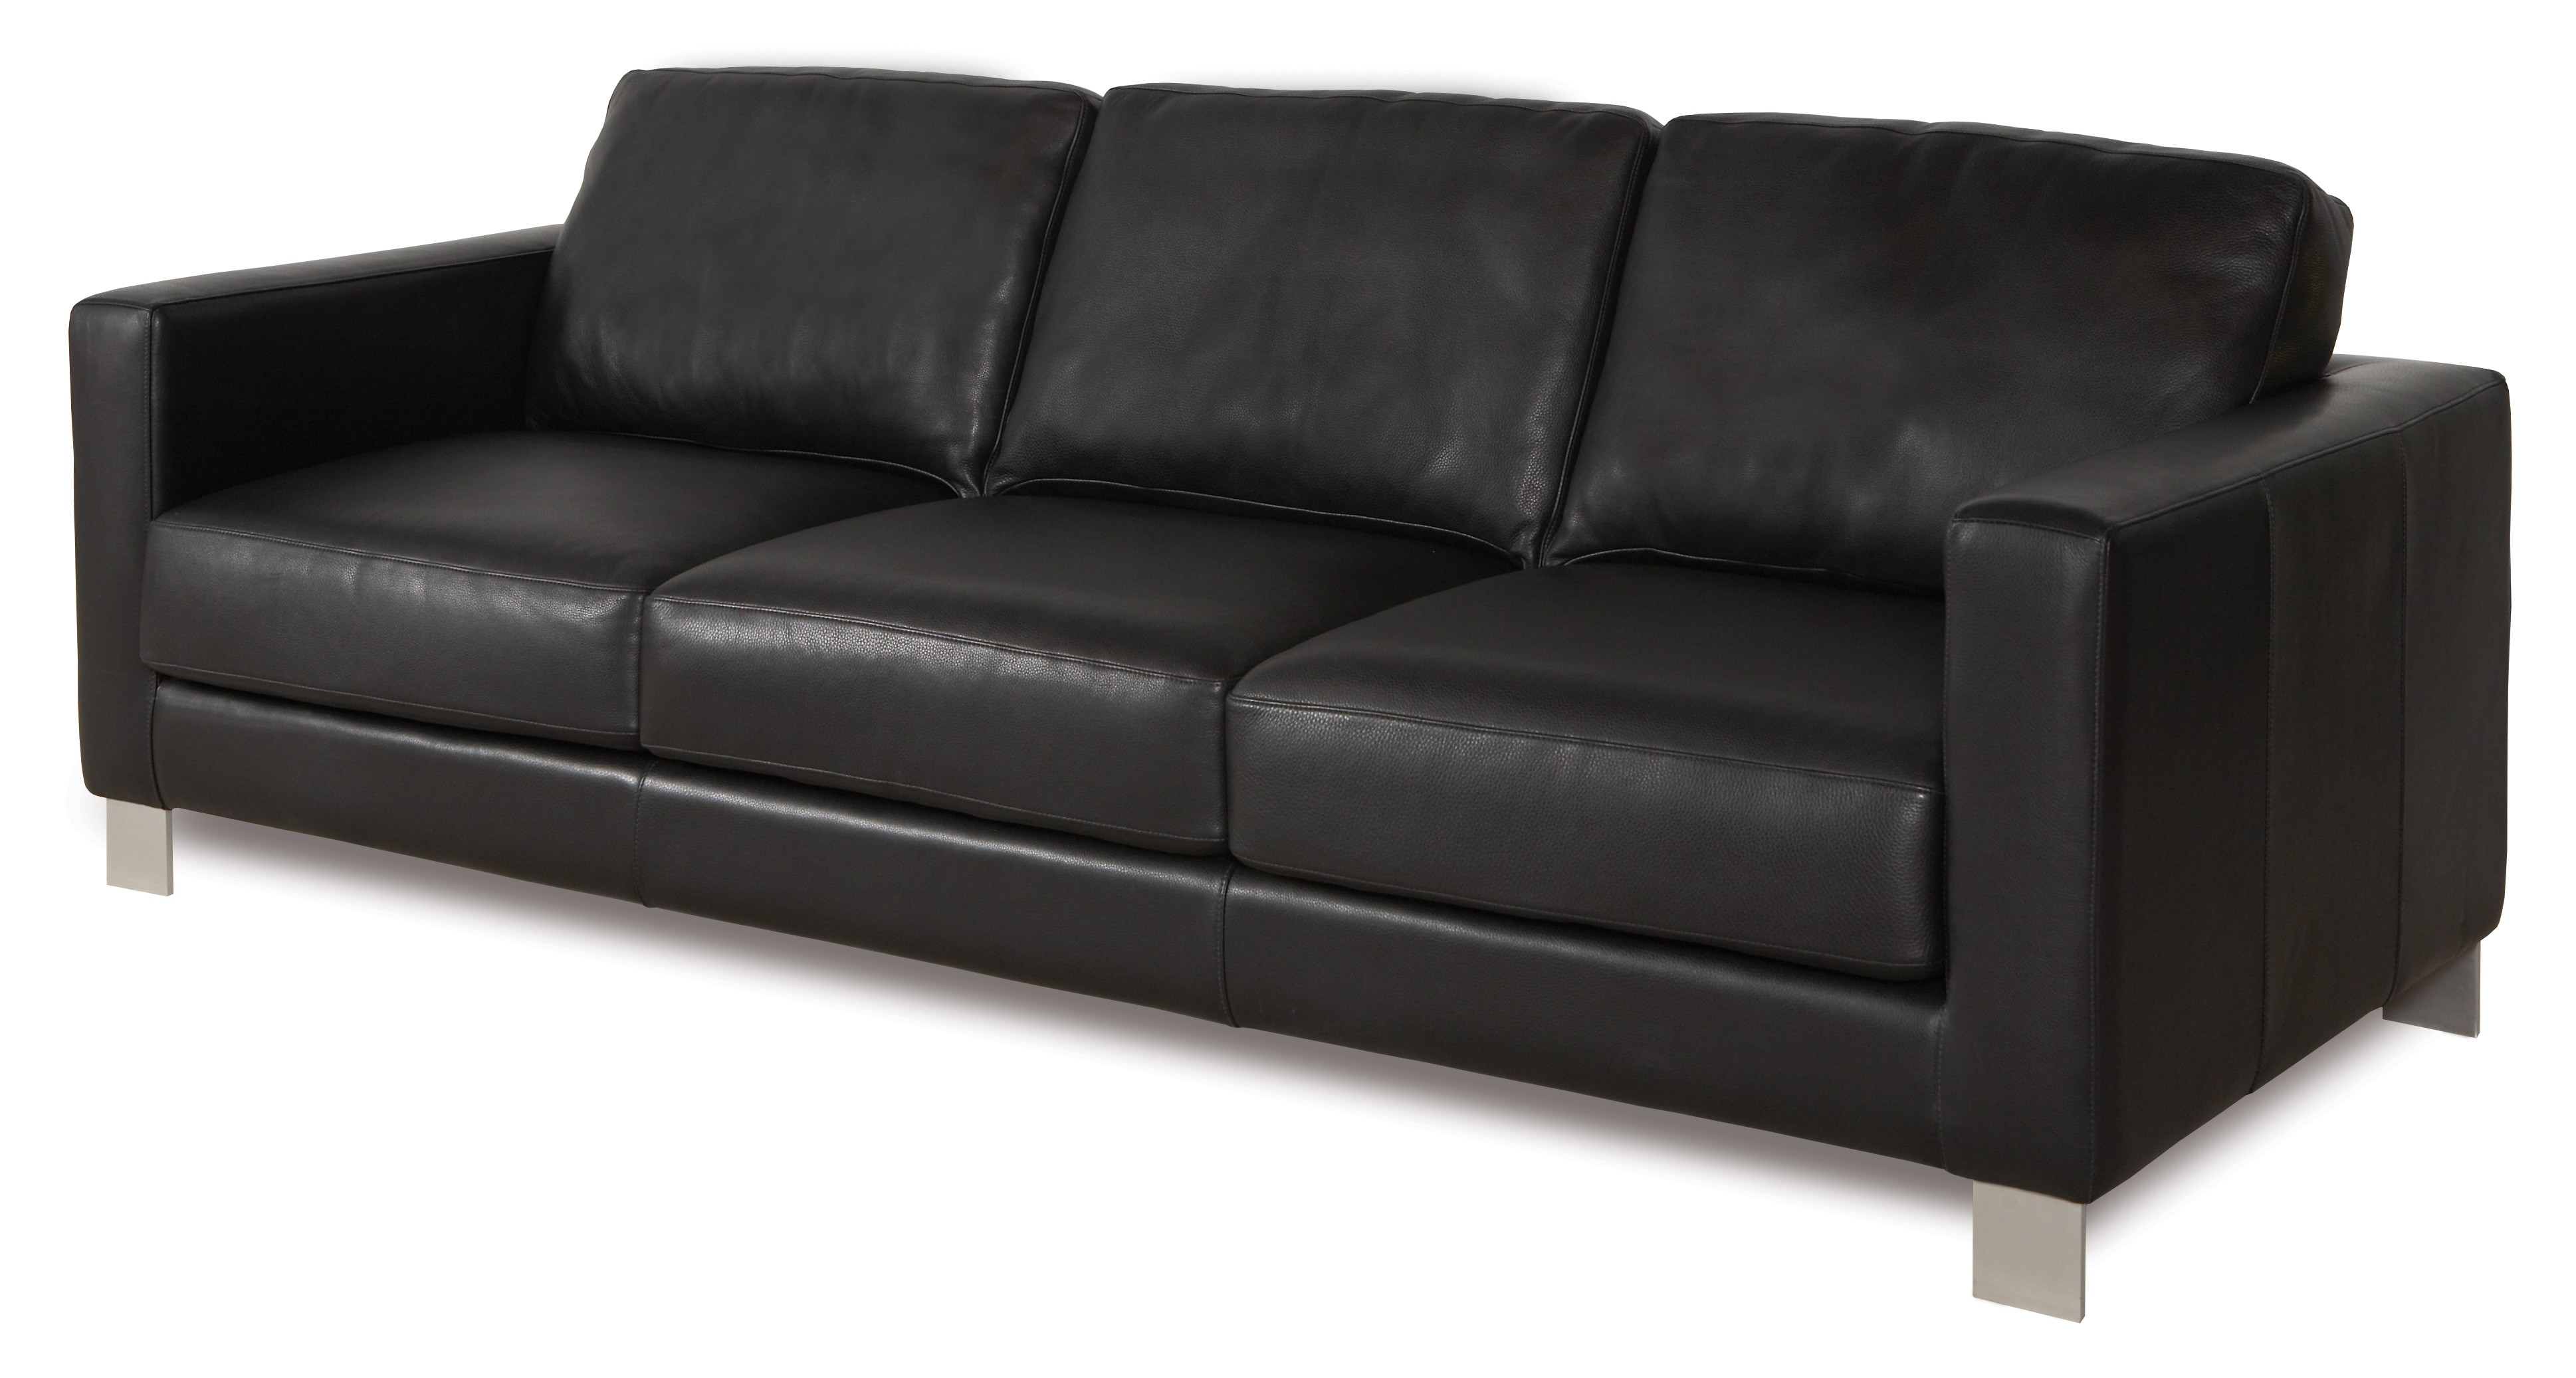 New American Leather Sofa 67 With Additional Sofas and Couches Ideas with American Leather Sofa